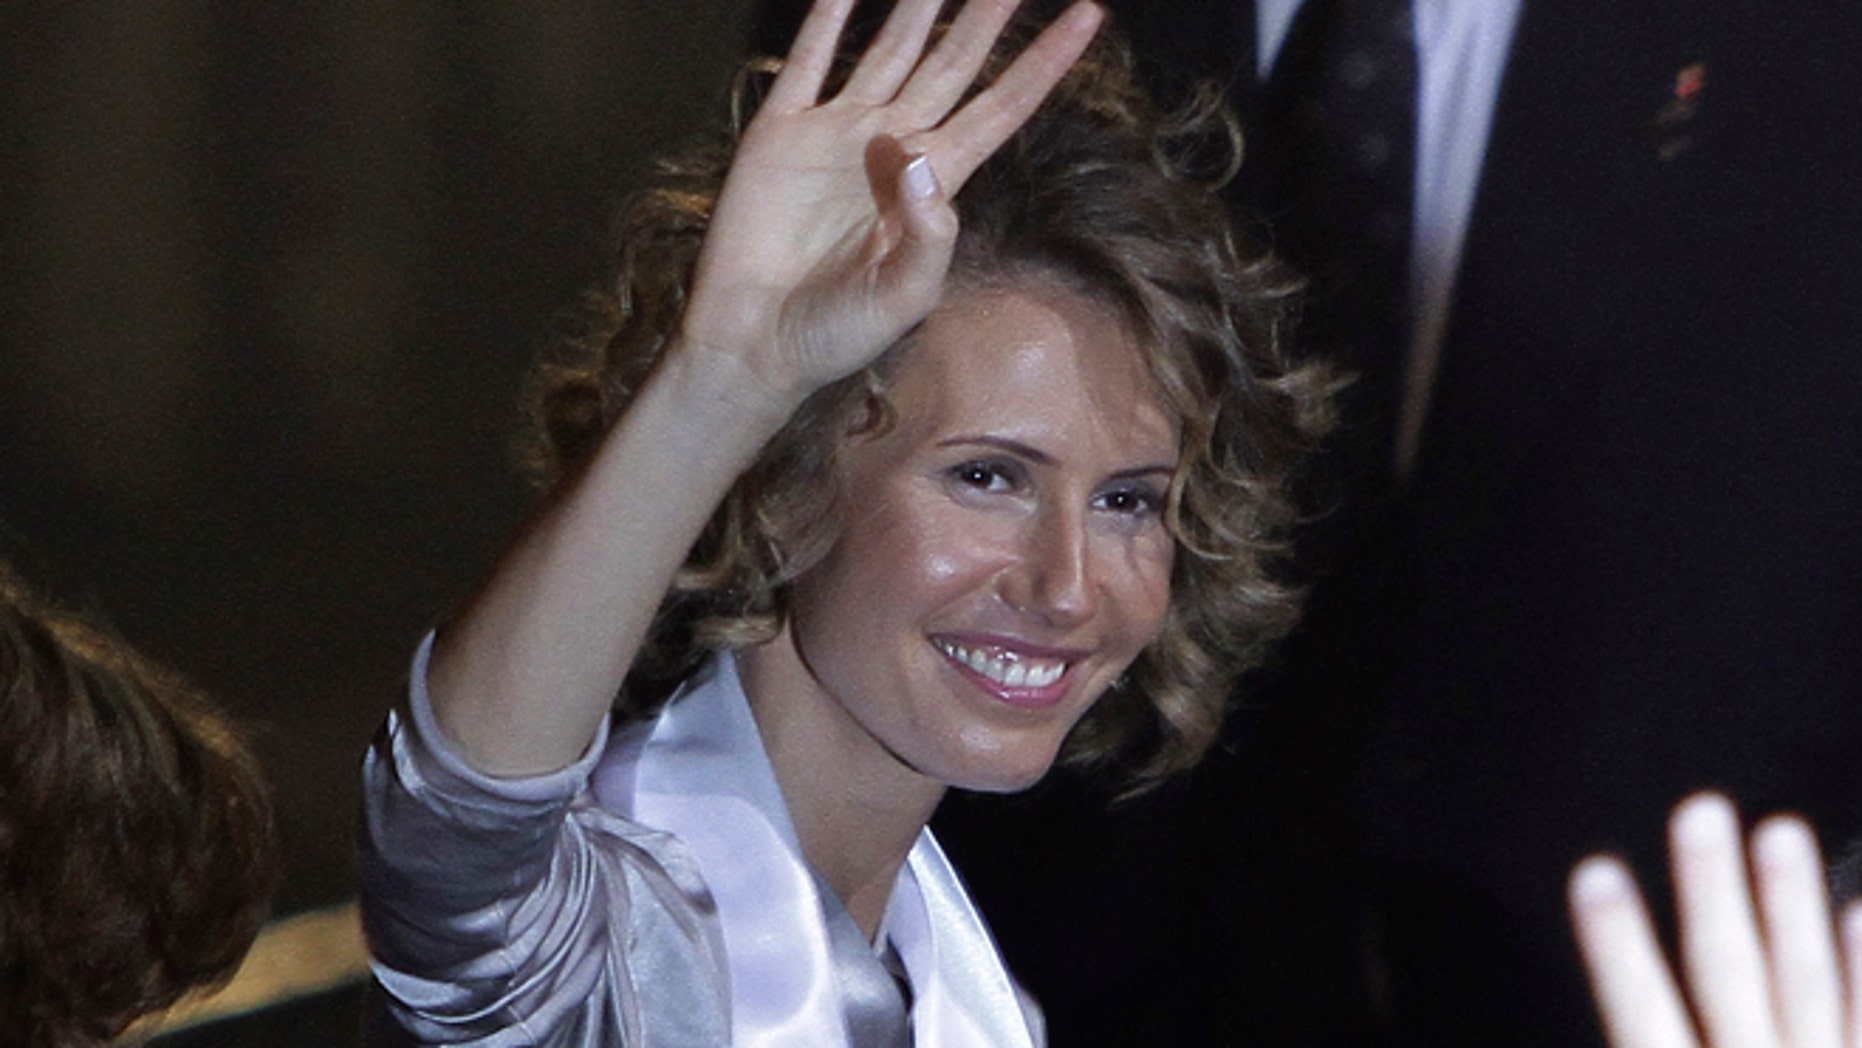 Sept. 25, 2010: Syria's First Lady Asma al-Assad waves as she attends the opening ceremony for the 7th Special Olympics Middle East/North Africa (SOMENA) Regional Games in Damascus.